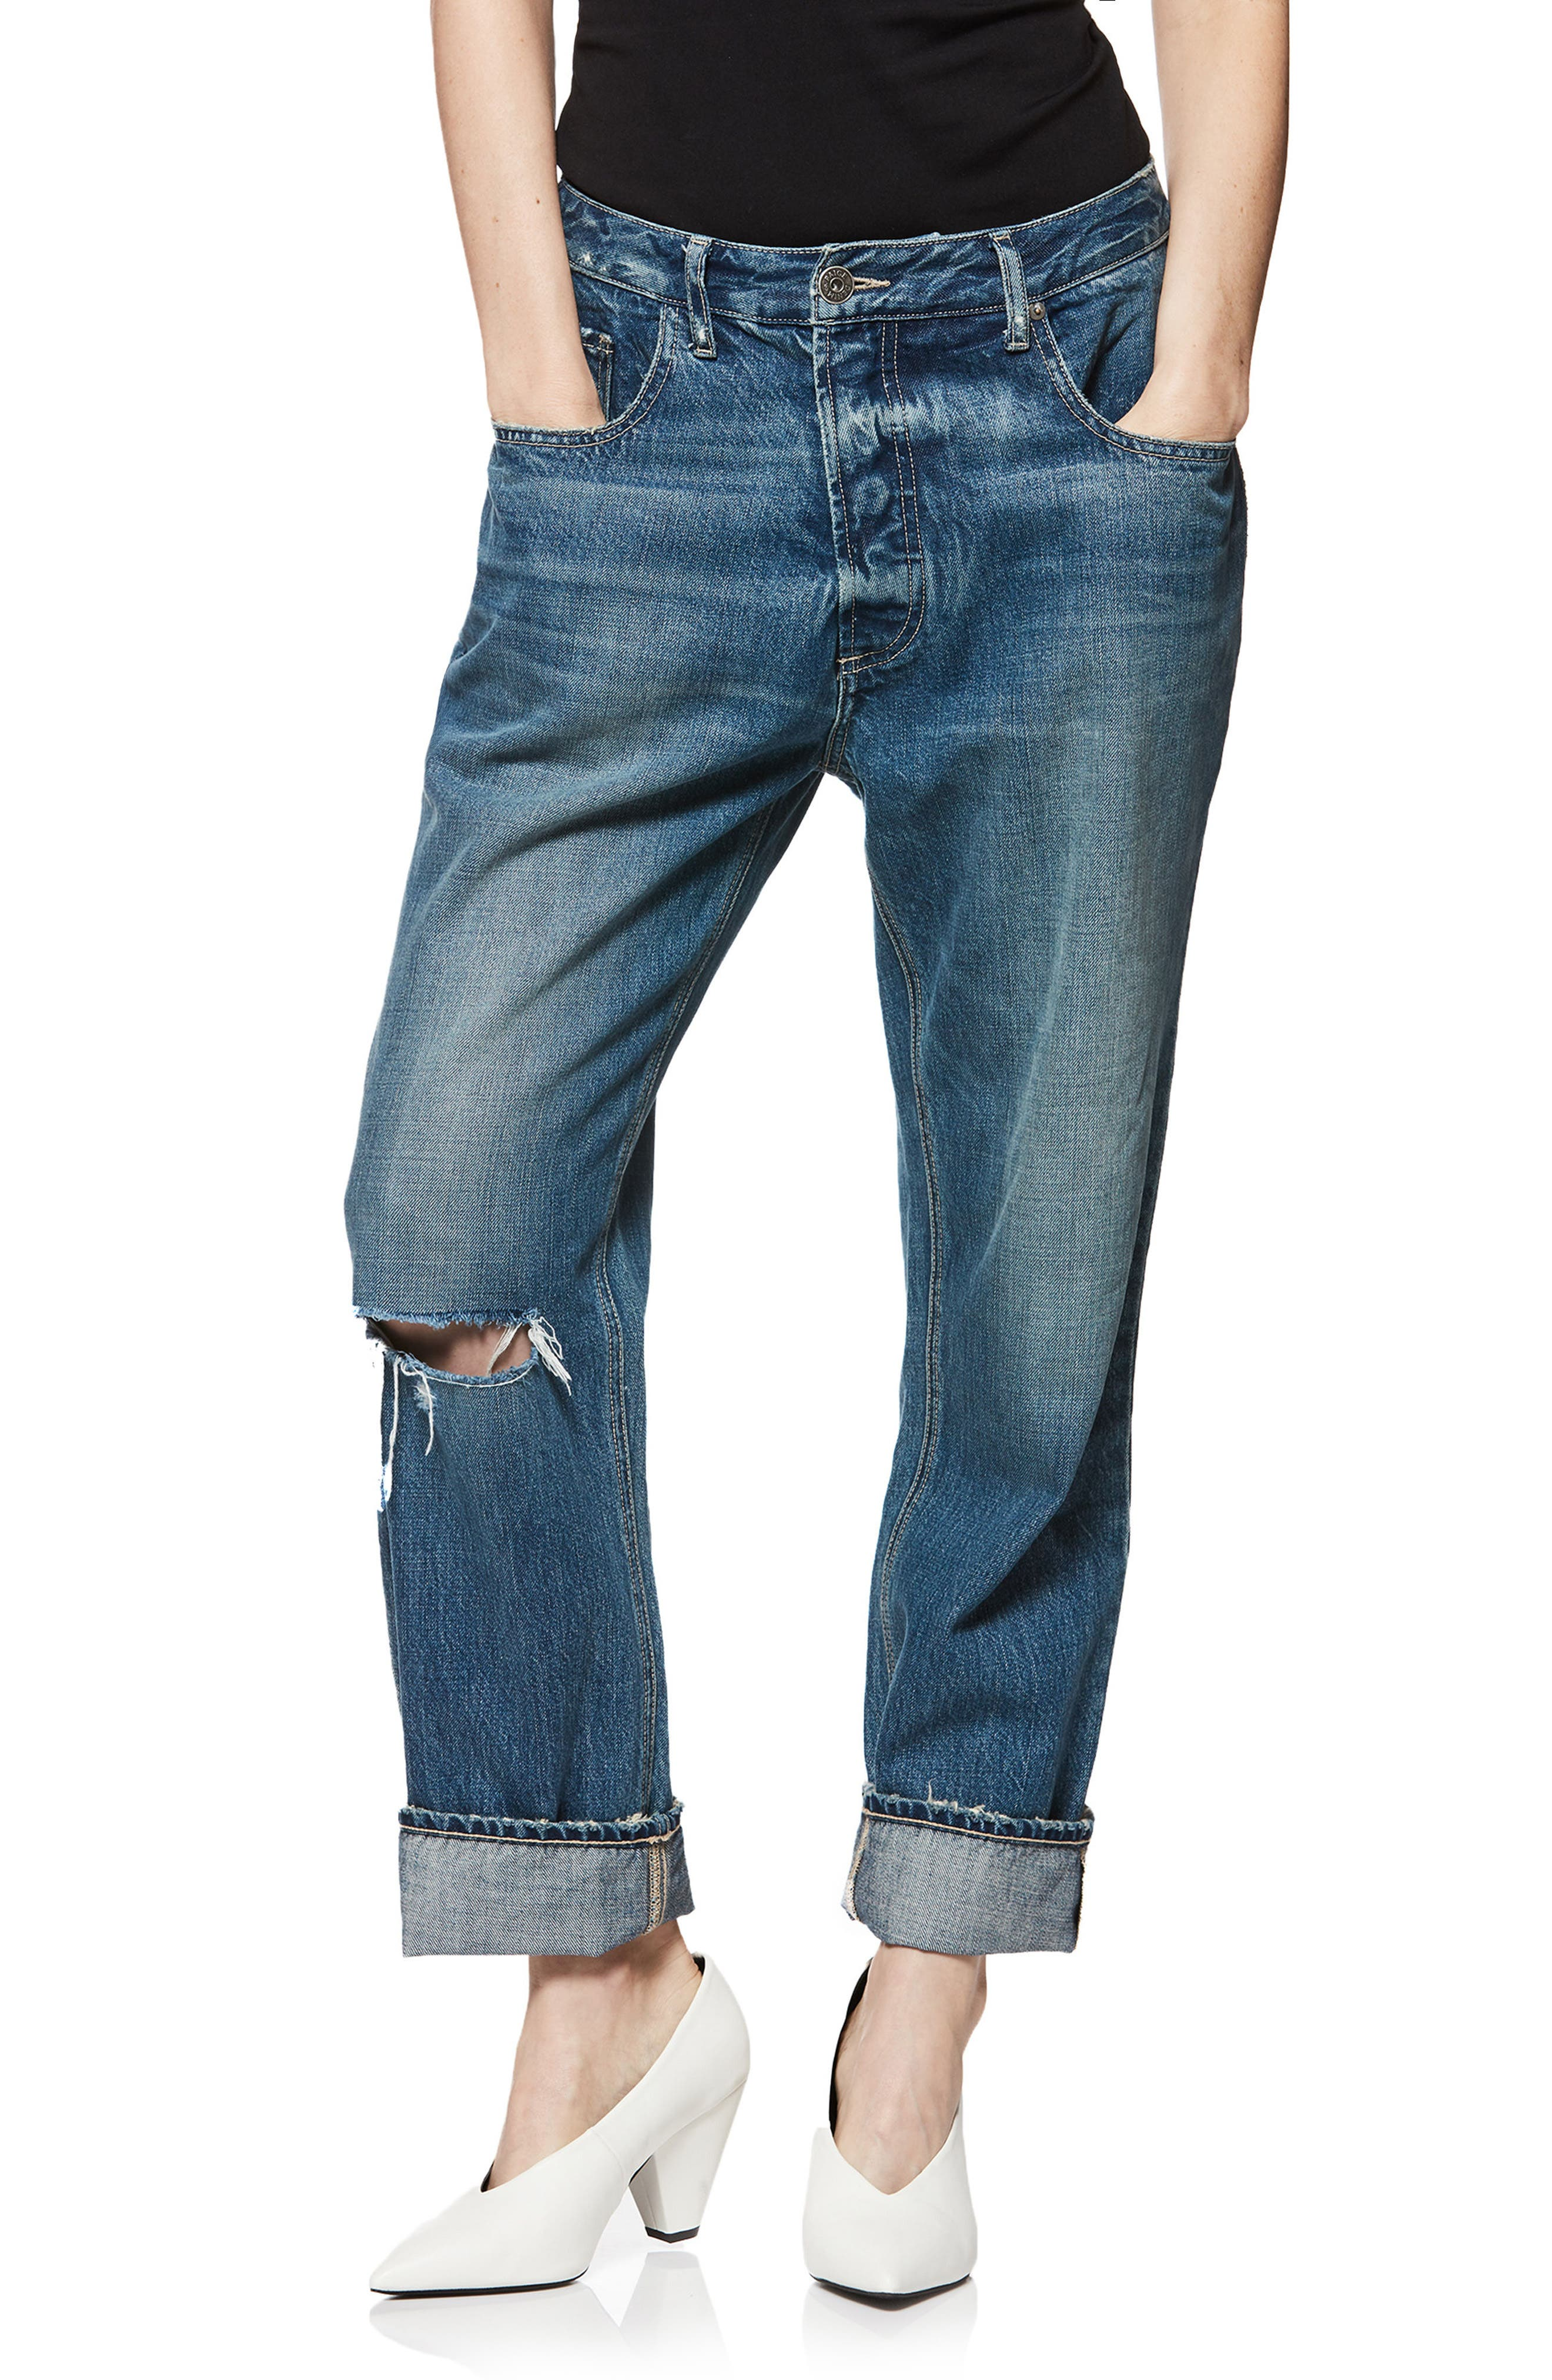 Mikey Mike Ripped Boyfriend Jeans,                         Main,                         color, 400